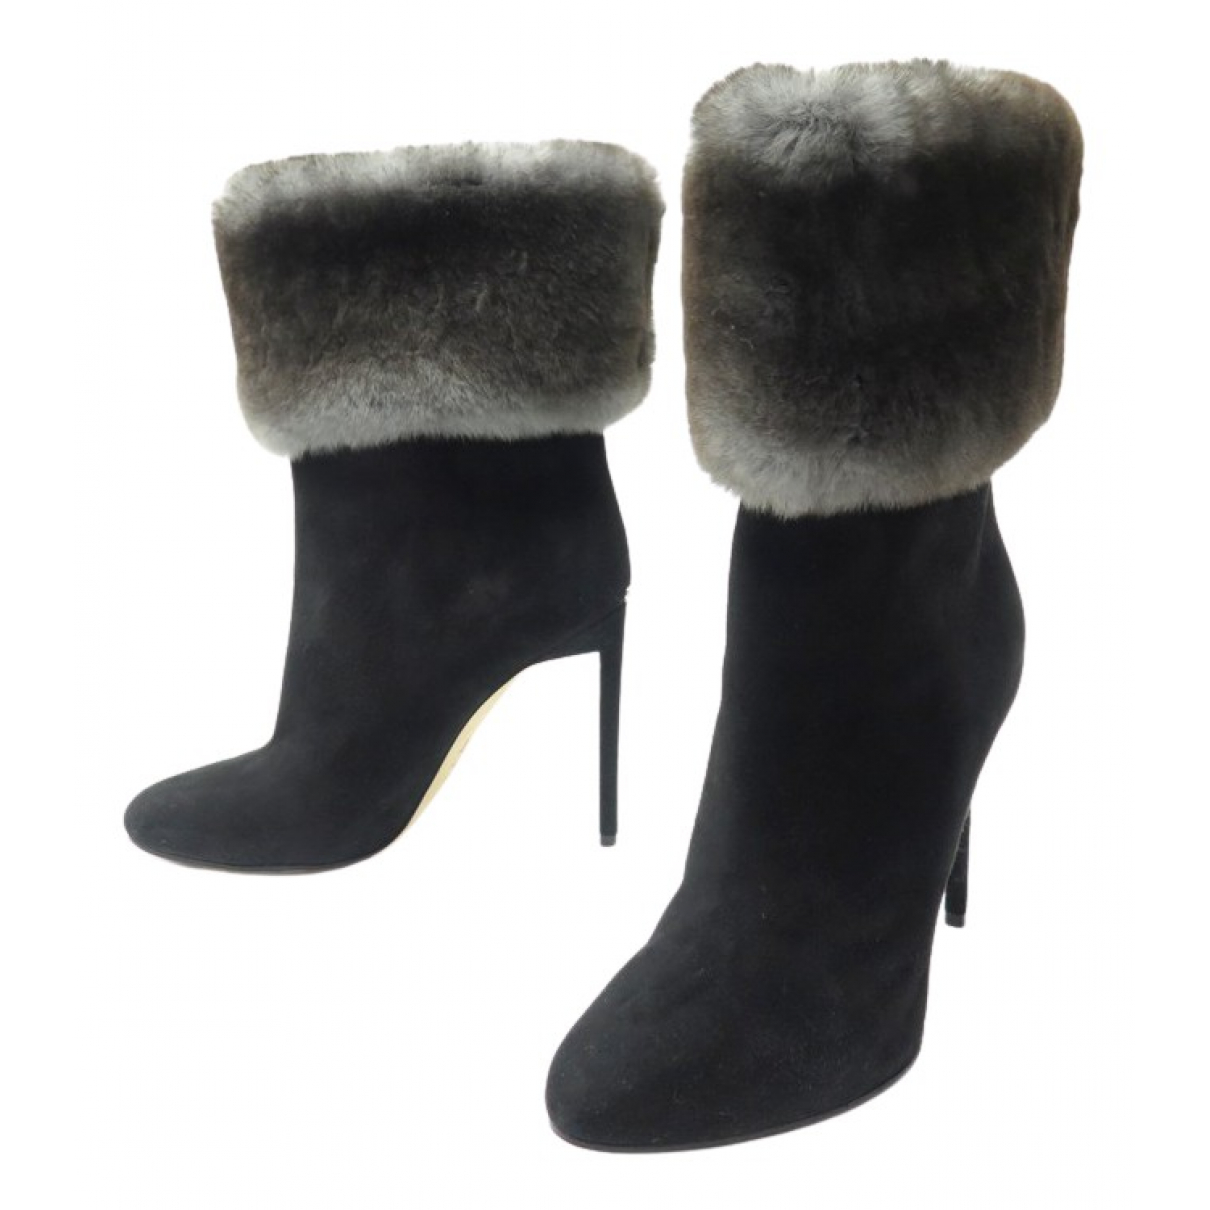 Dior N Black Suede Ankle boots for Women 39.5 EU